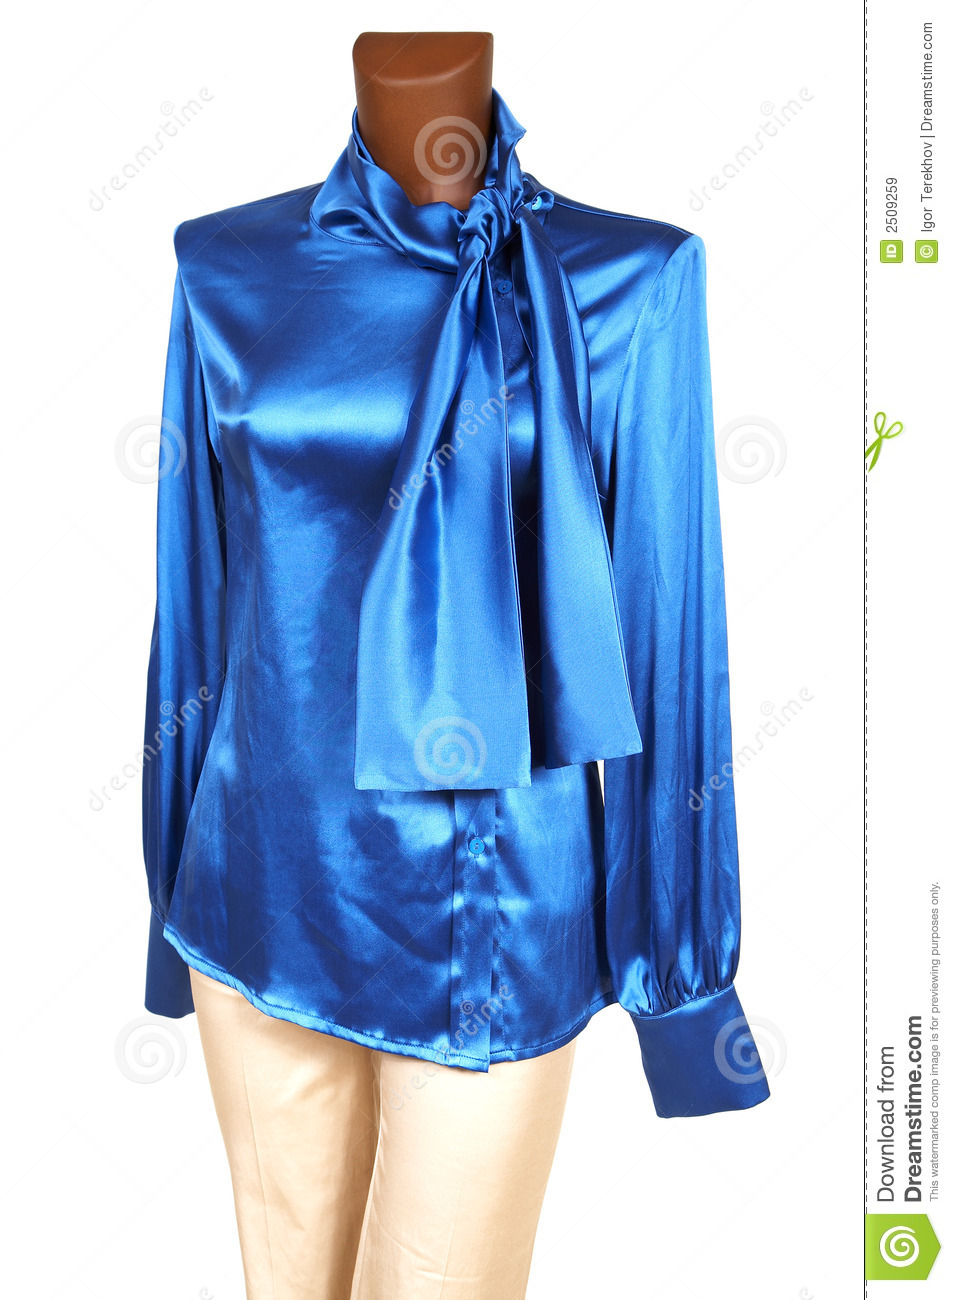 Blue silk blouse royalty free stock images image 2509259